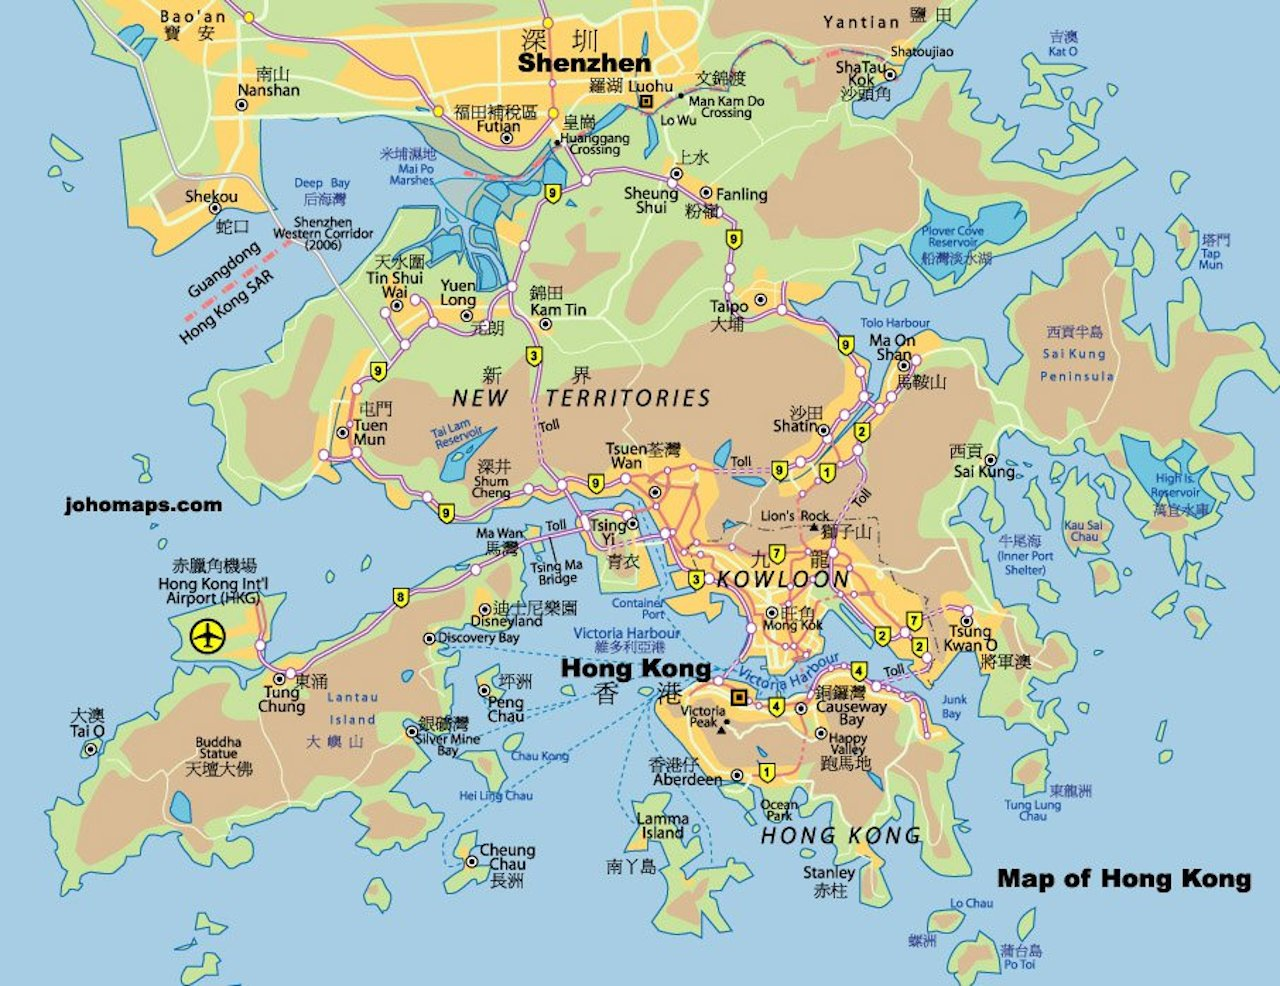 home-james-global-real-estate-hong-kong-map